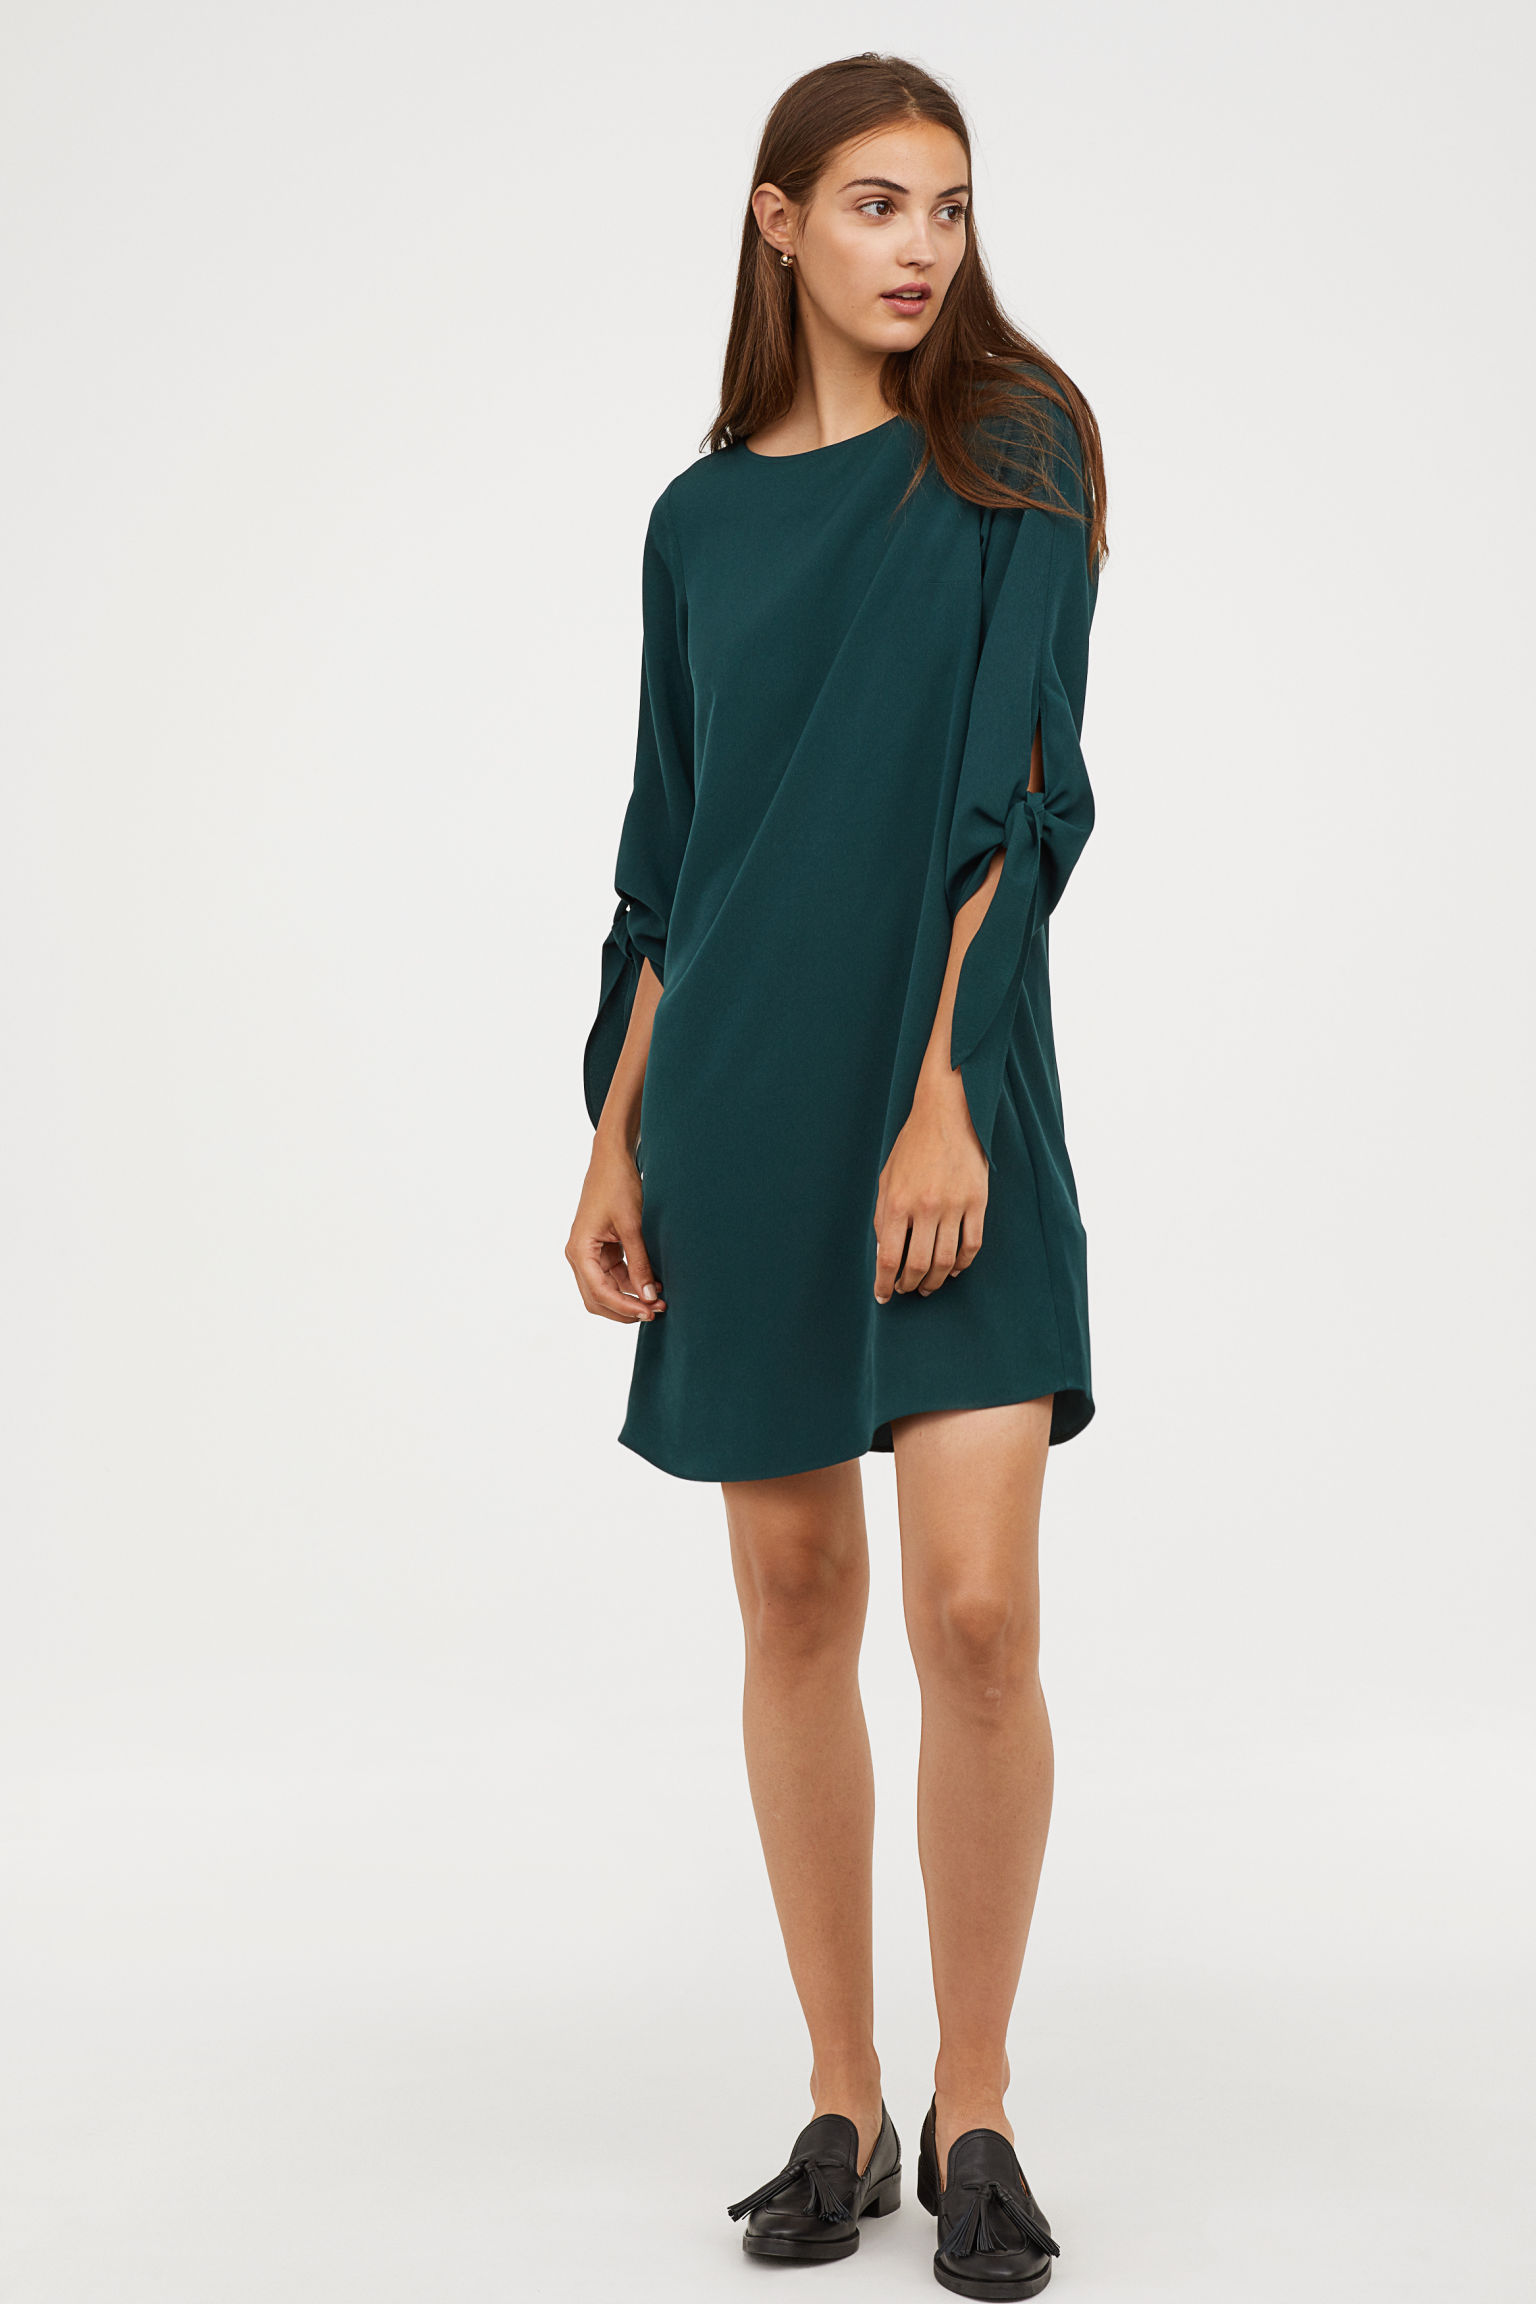 H&M: Creped Tie-Sleeve Dress